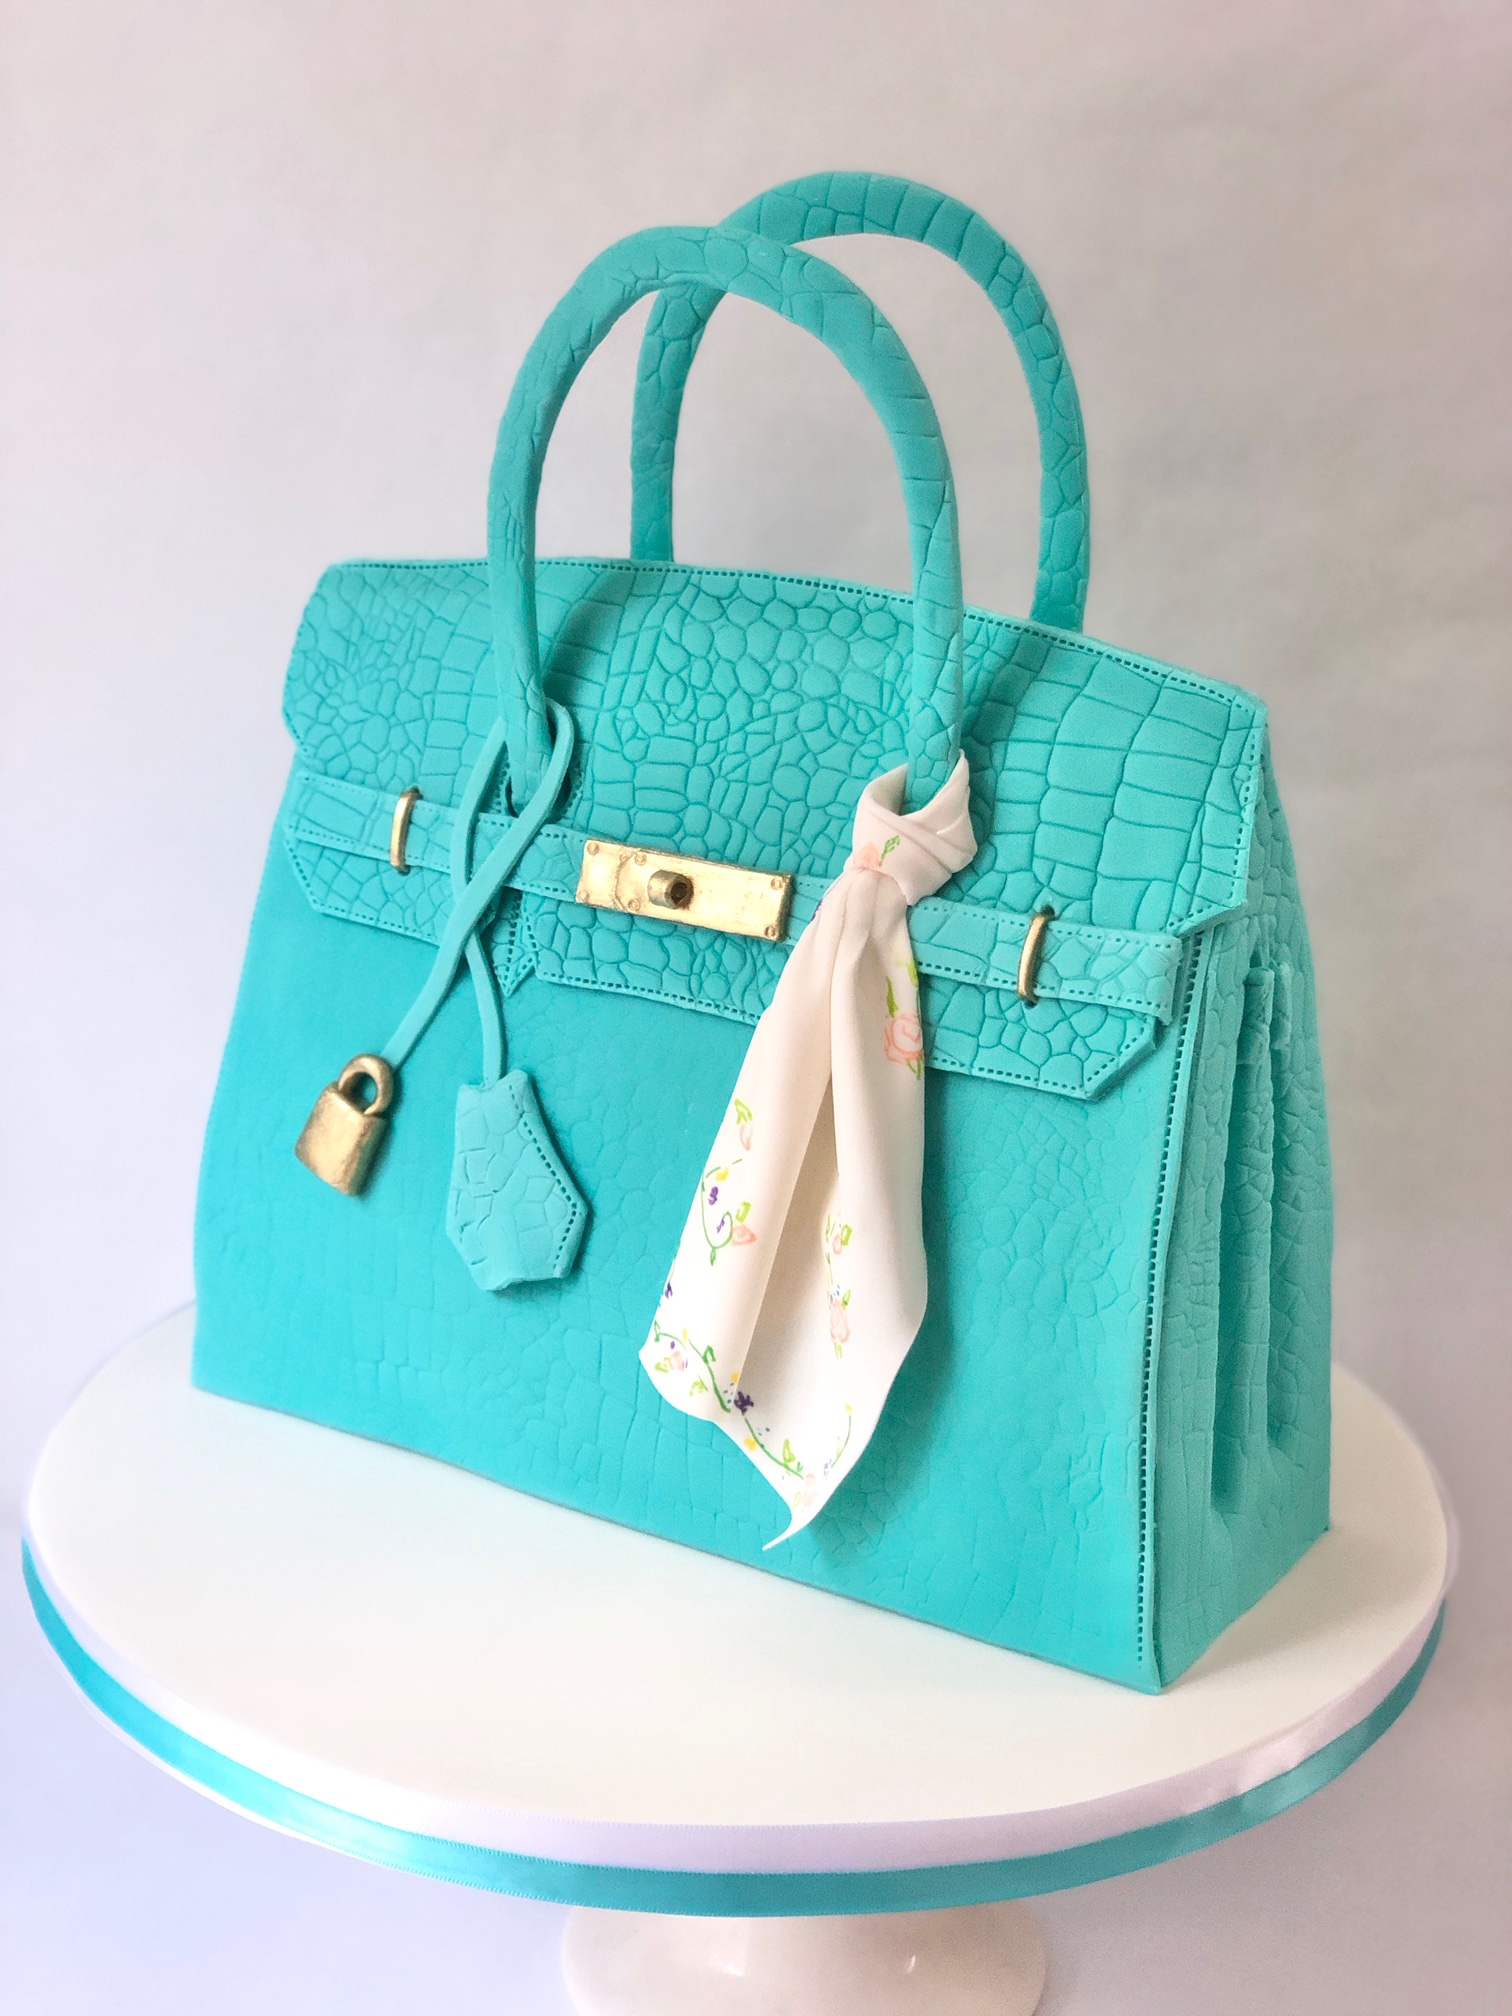 Hermes Purse Custom Cake